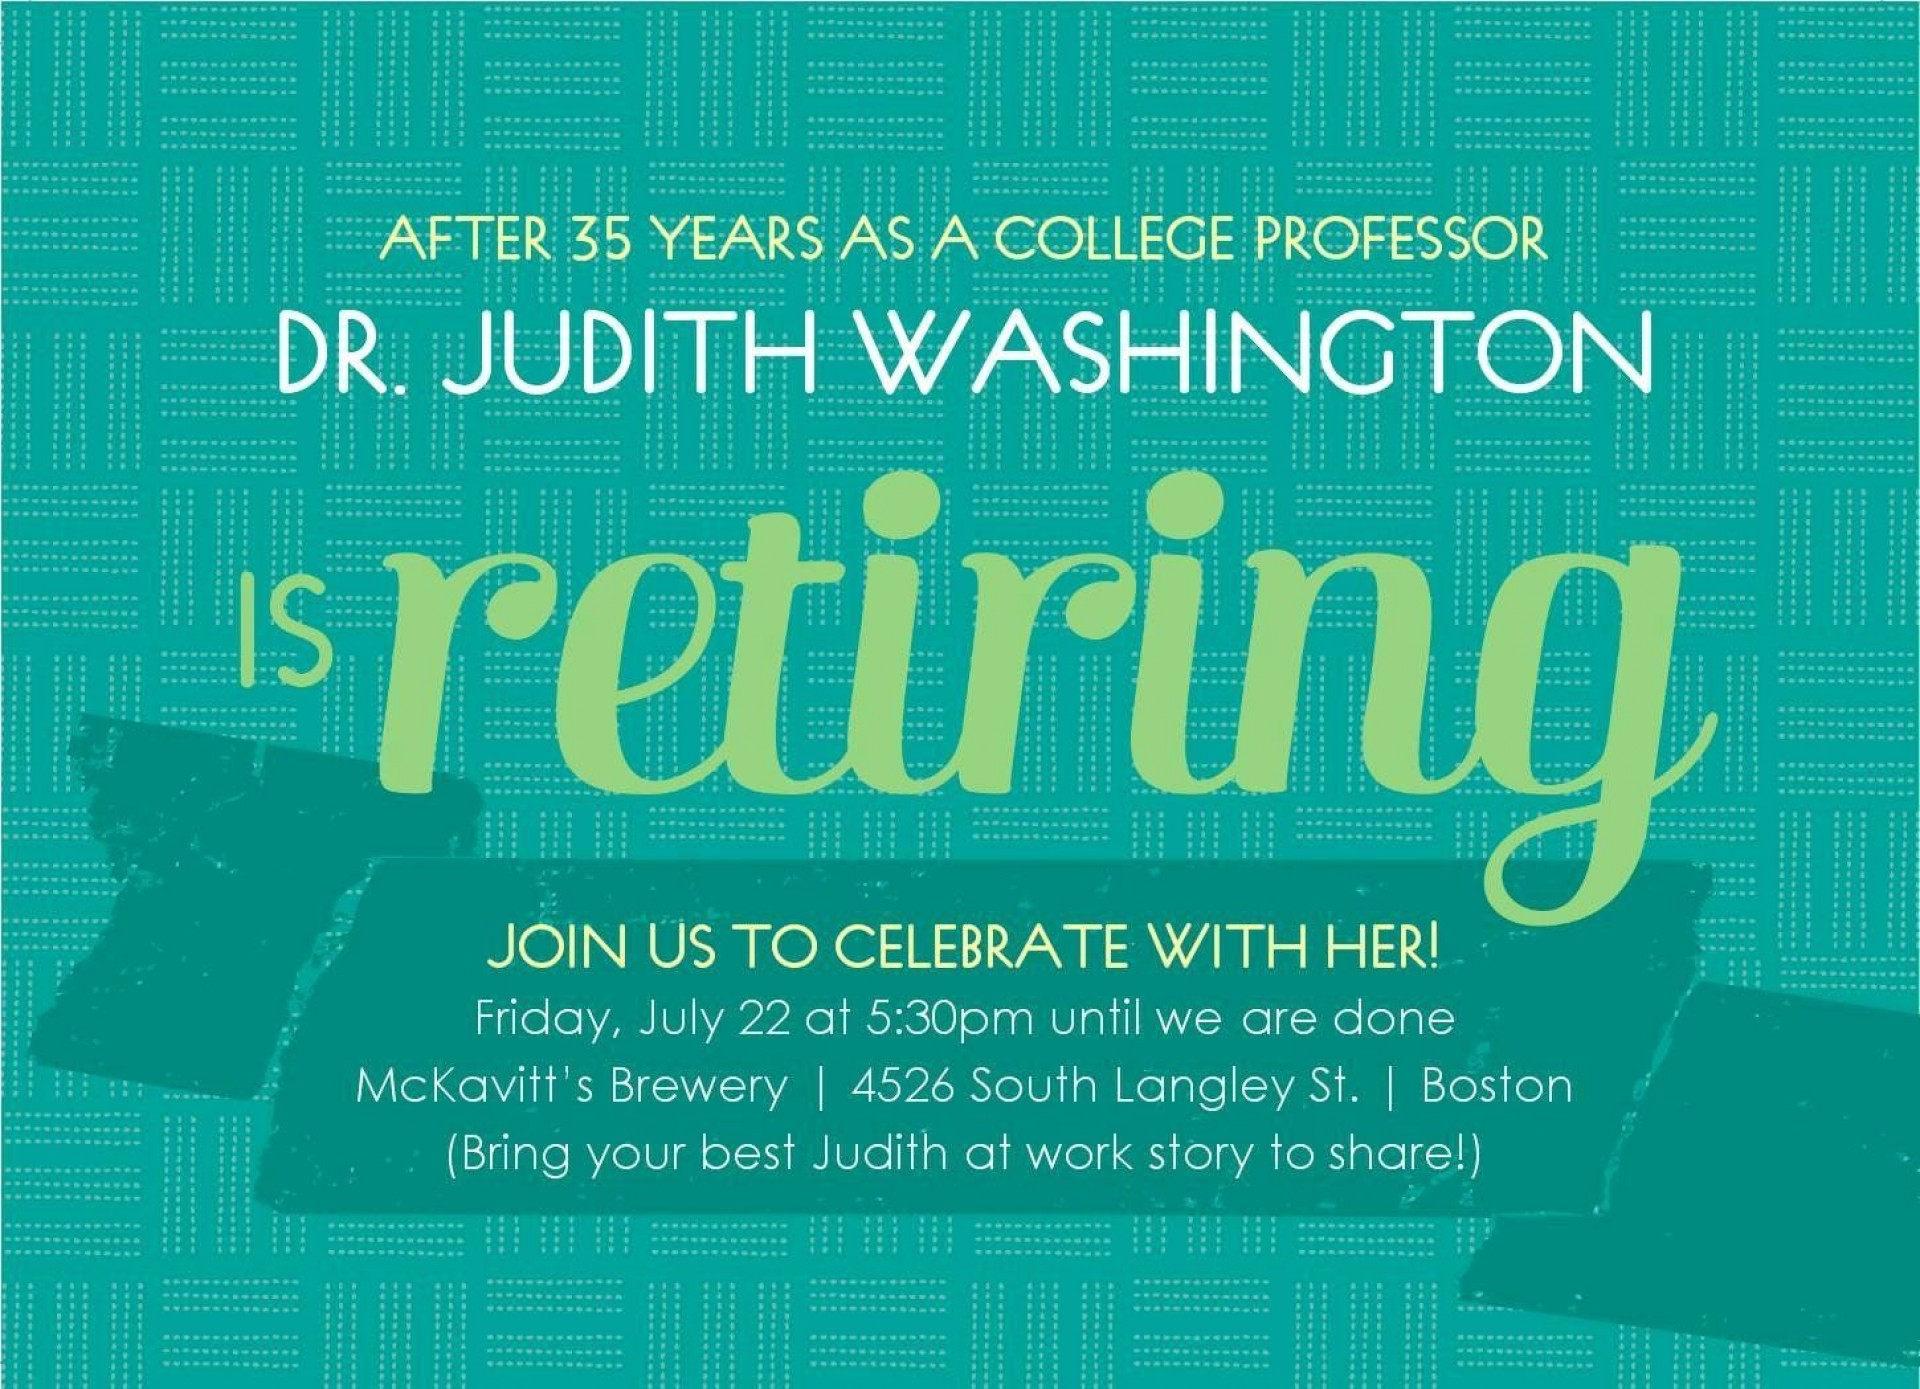 002 Fascinating Retirement Party Invitation Template Free Word Image  M1920